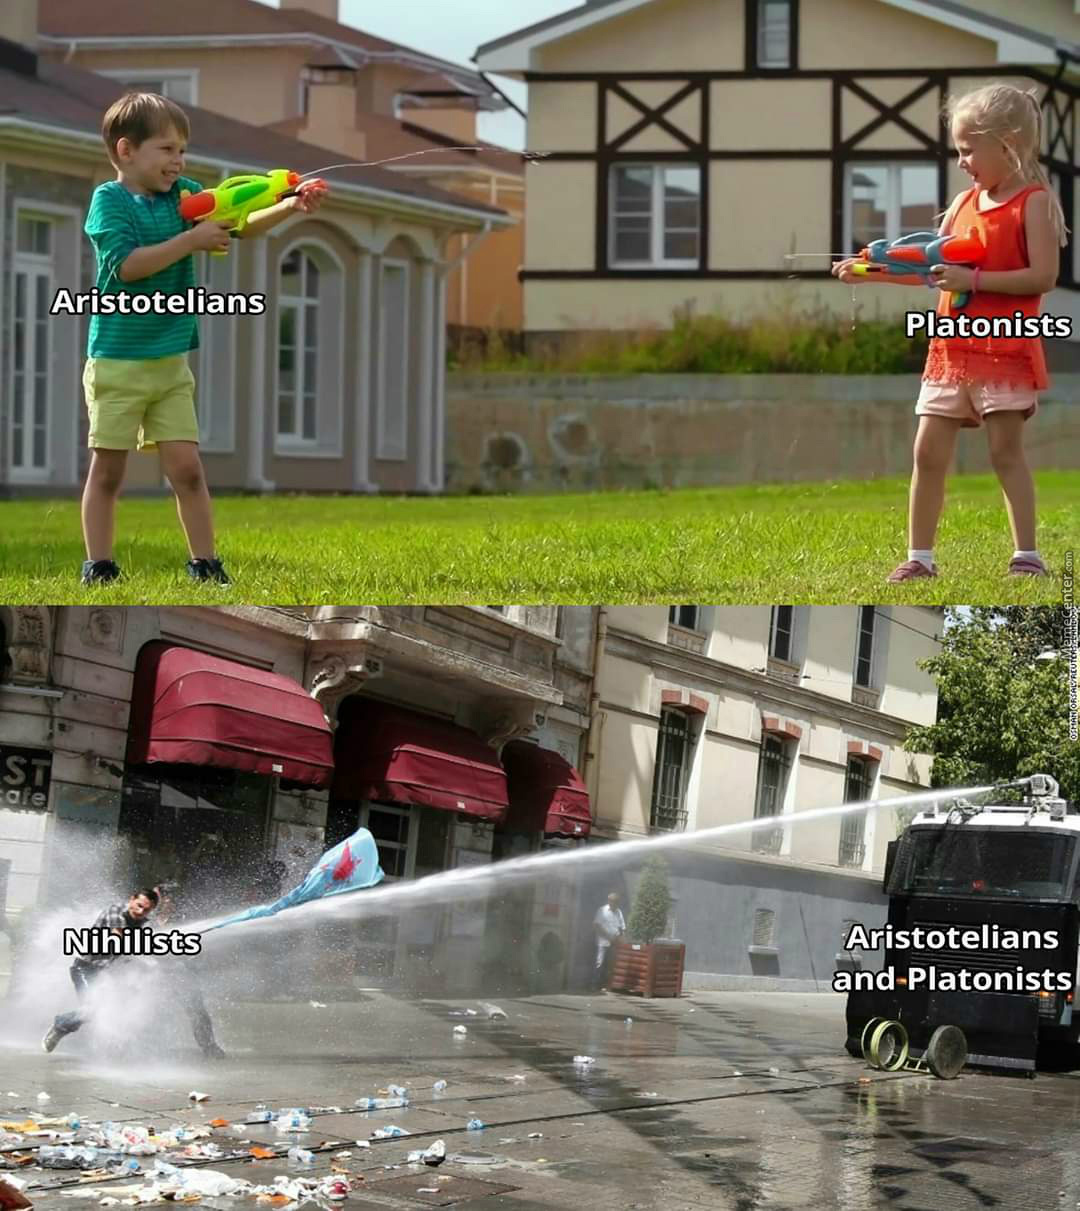 Nihilists Getting Btfo By Platonists And Aristotelians